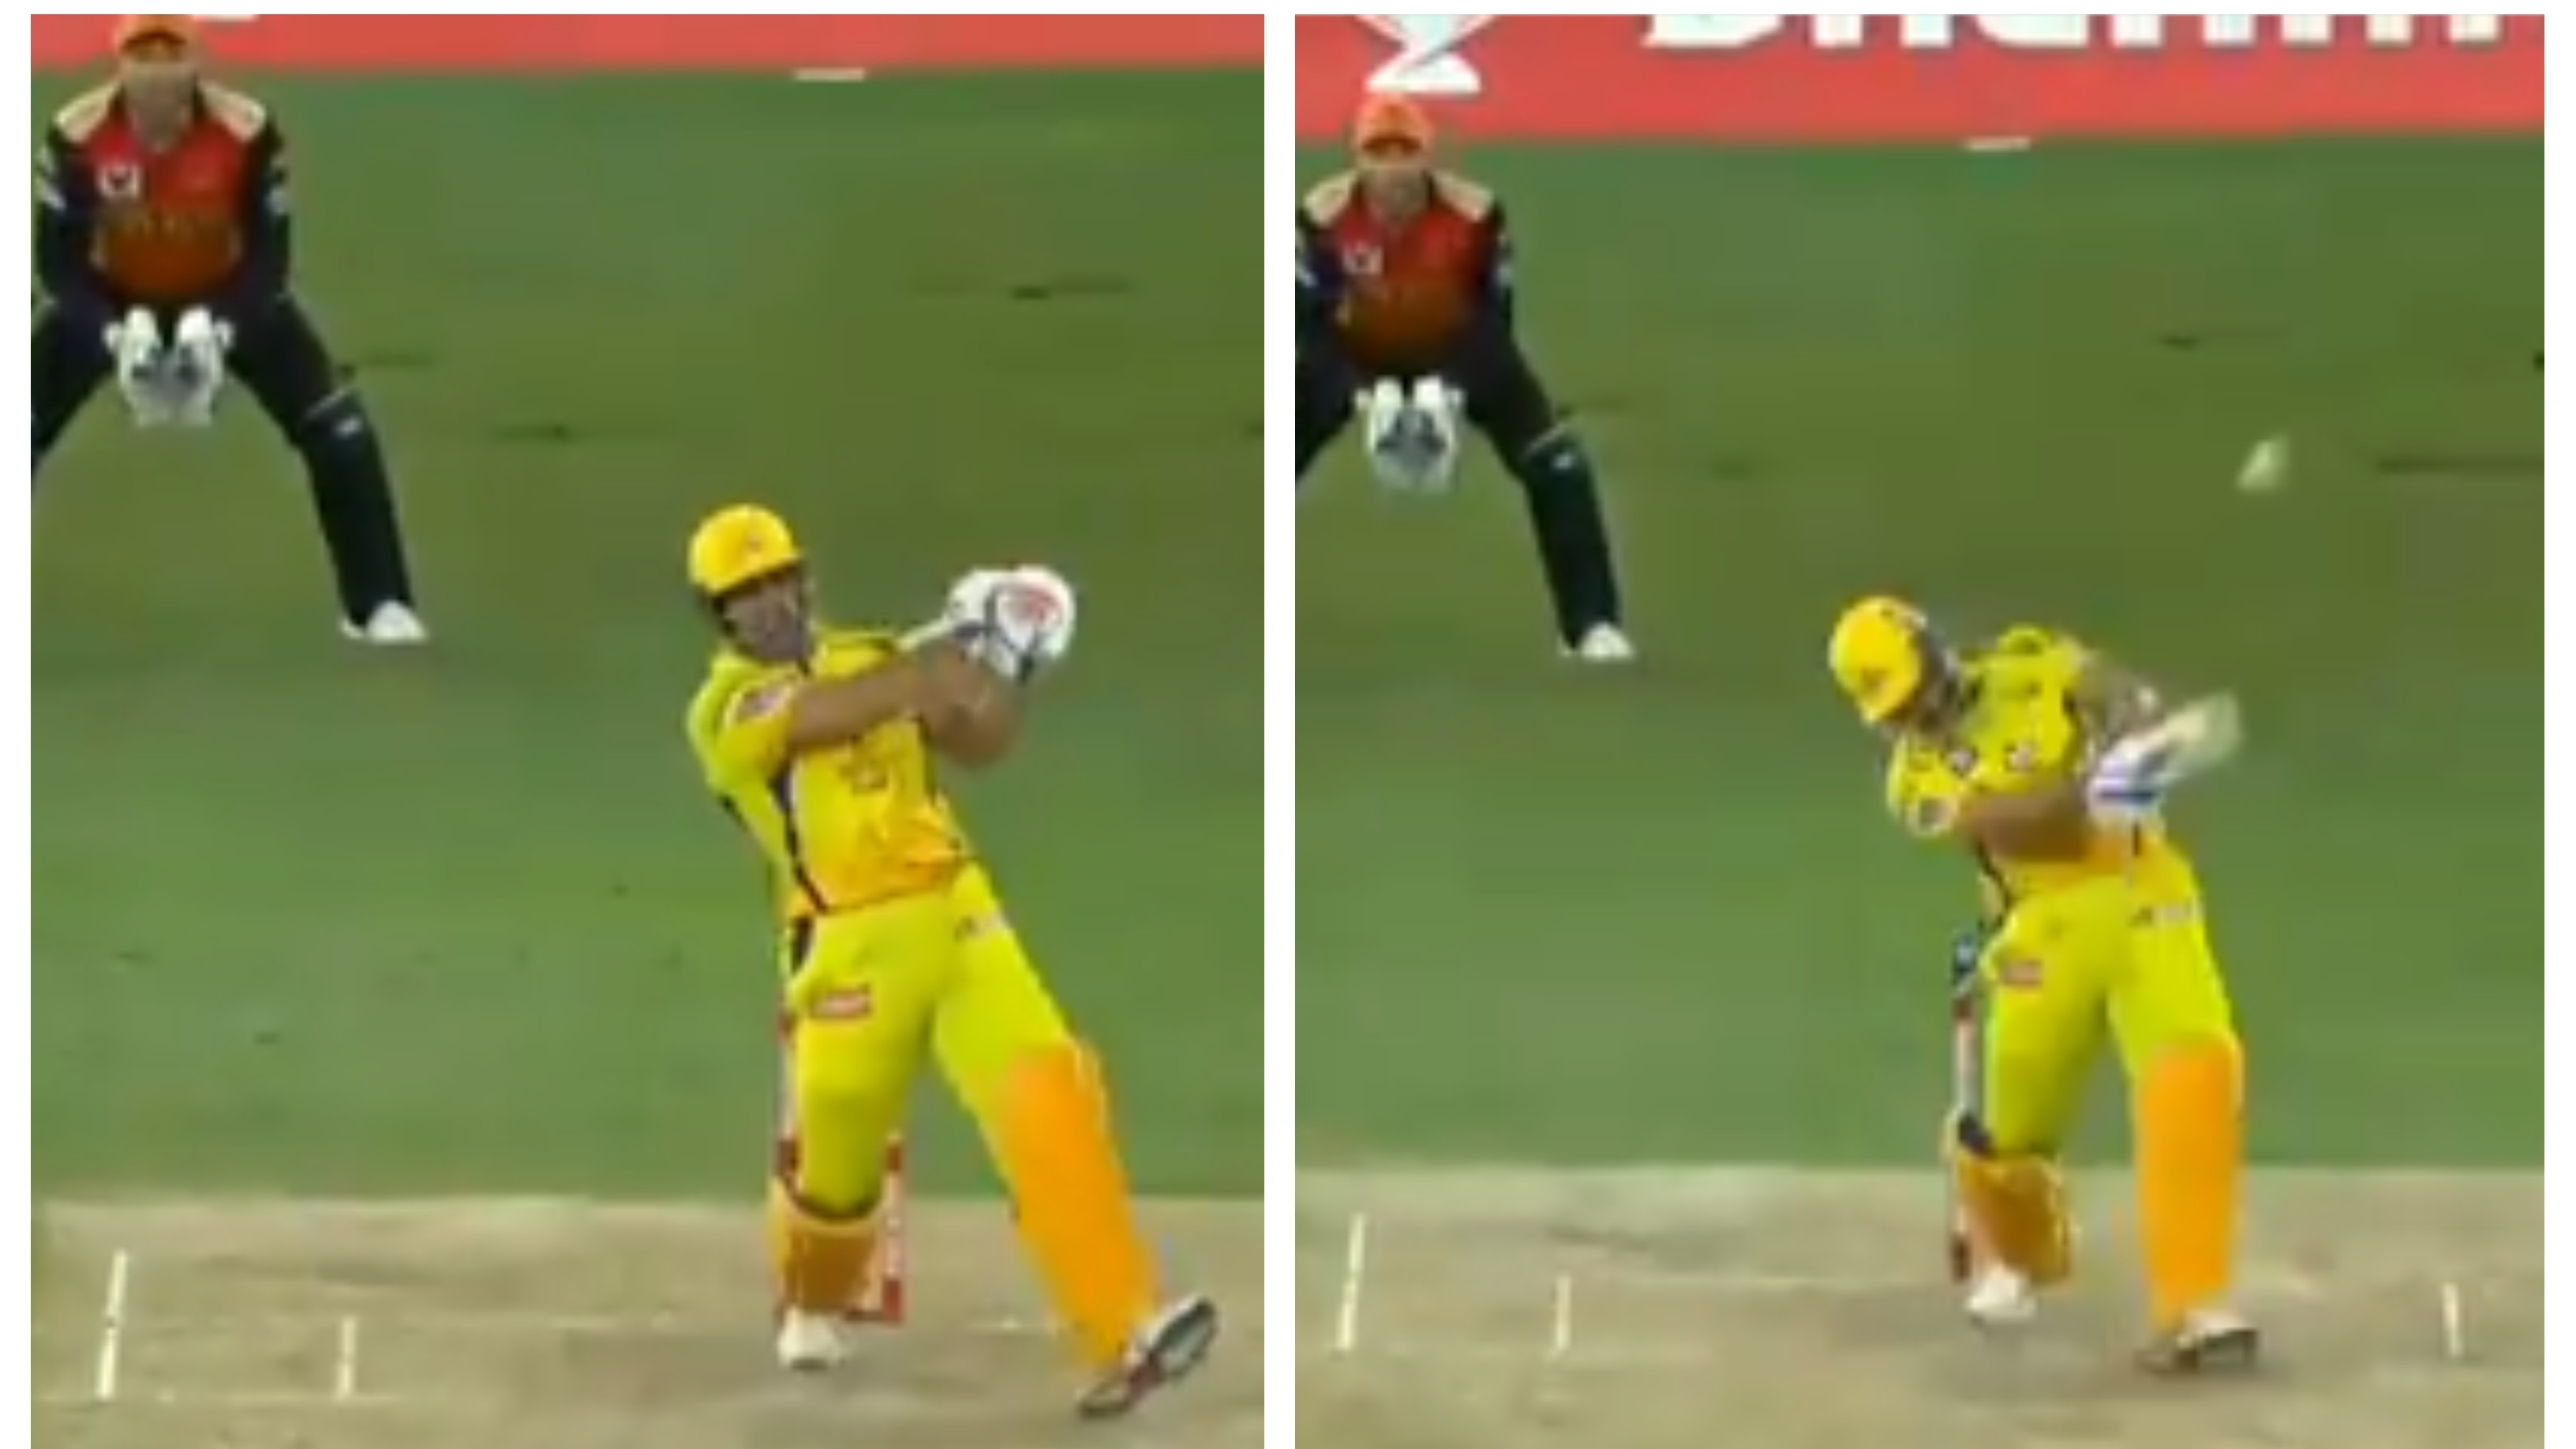 IPL 2020: WATCH – MS Dhoni shows his brutal power, smashes 102m long six off T Natarajan